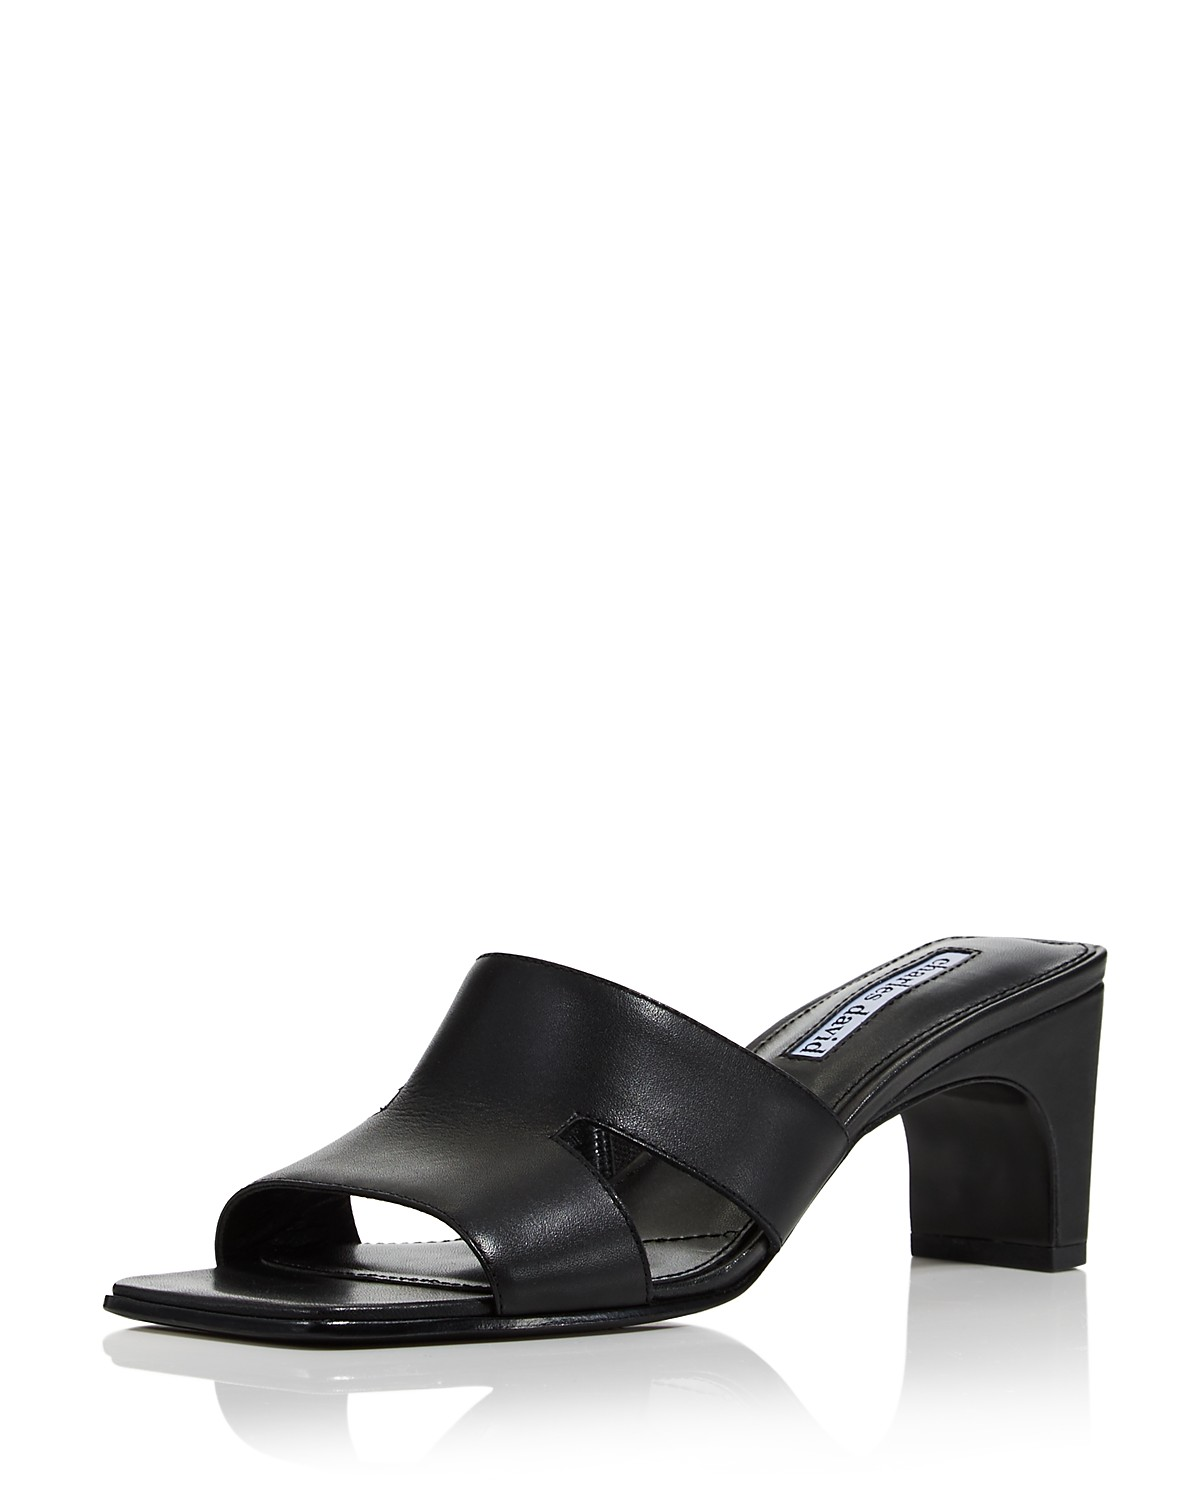 Charles David Women's Harley Leather Cutout Slide Sandals KxDVr